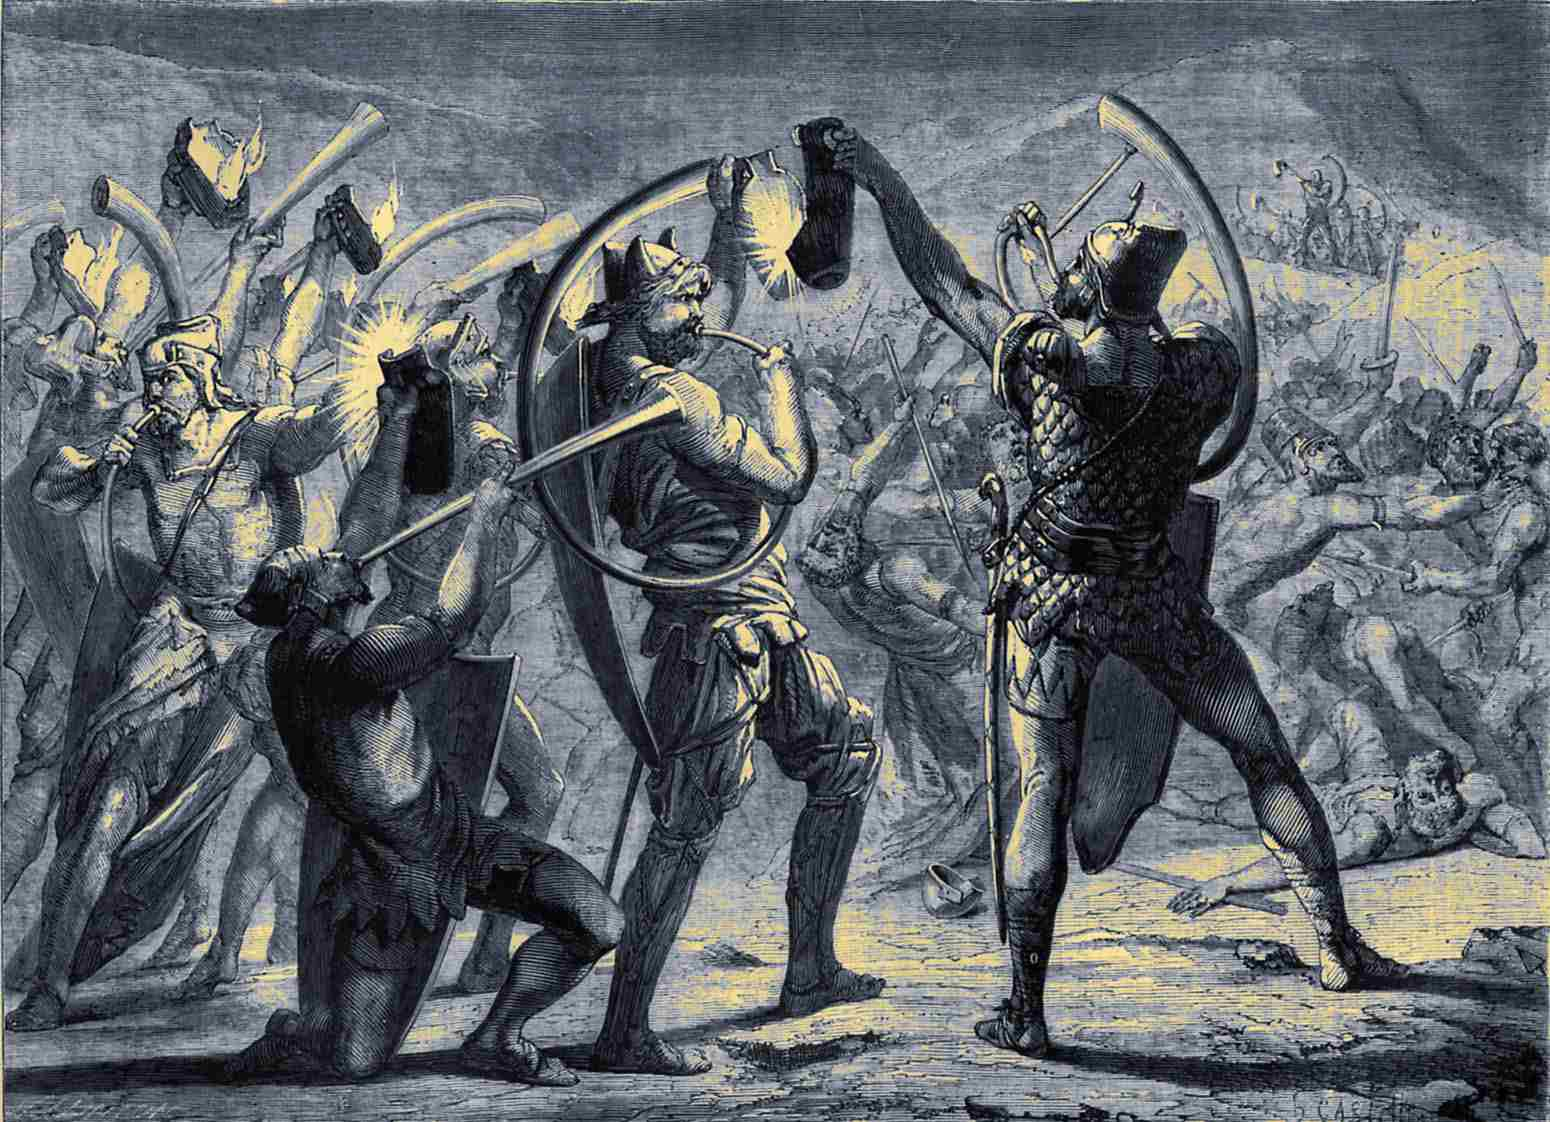 Gideon surprising the army of the Midianites